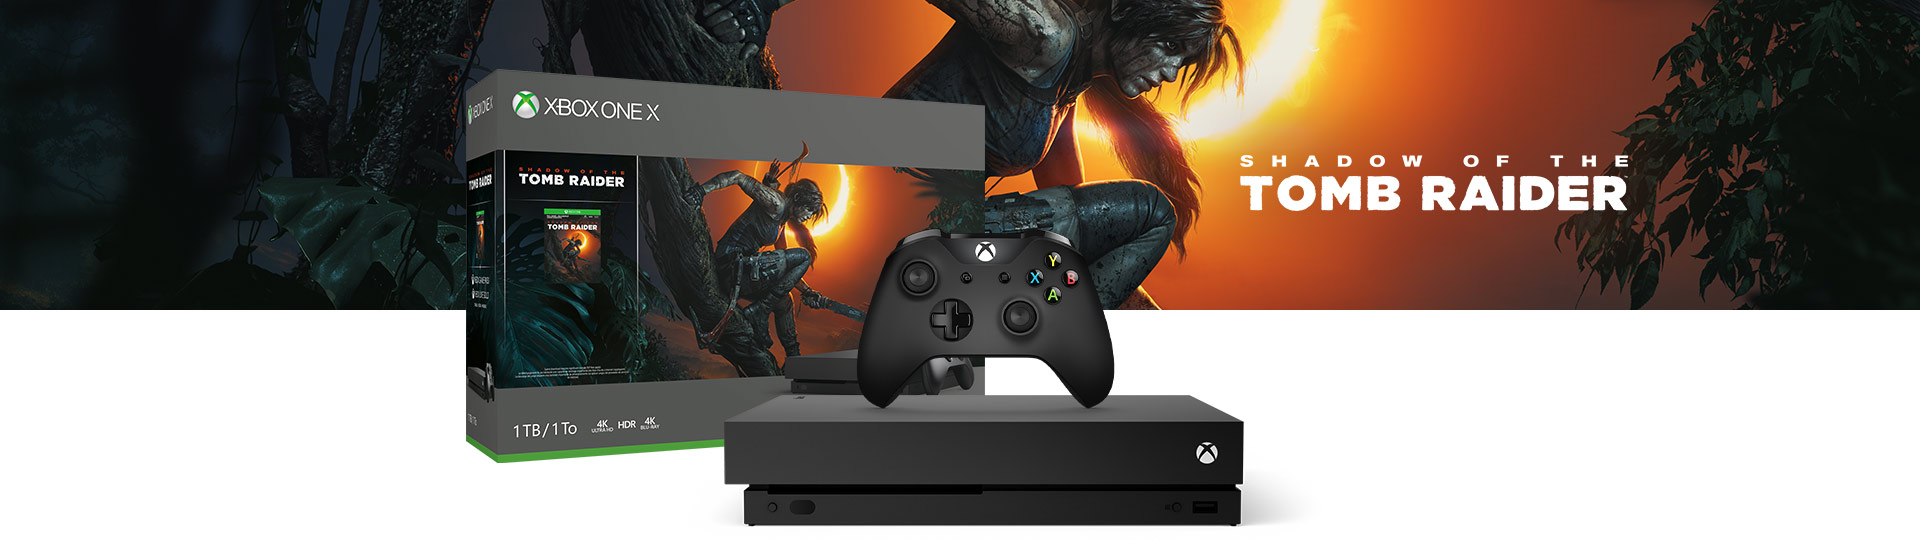 Xbox One X Shadow of the Tomb Raider 1 terabayt ürün kutusunun yanında duran Xbox One X ve Oyun Kumandası